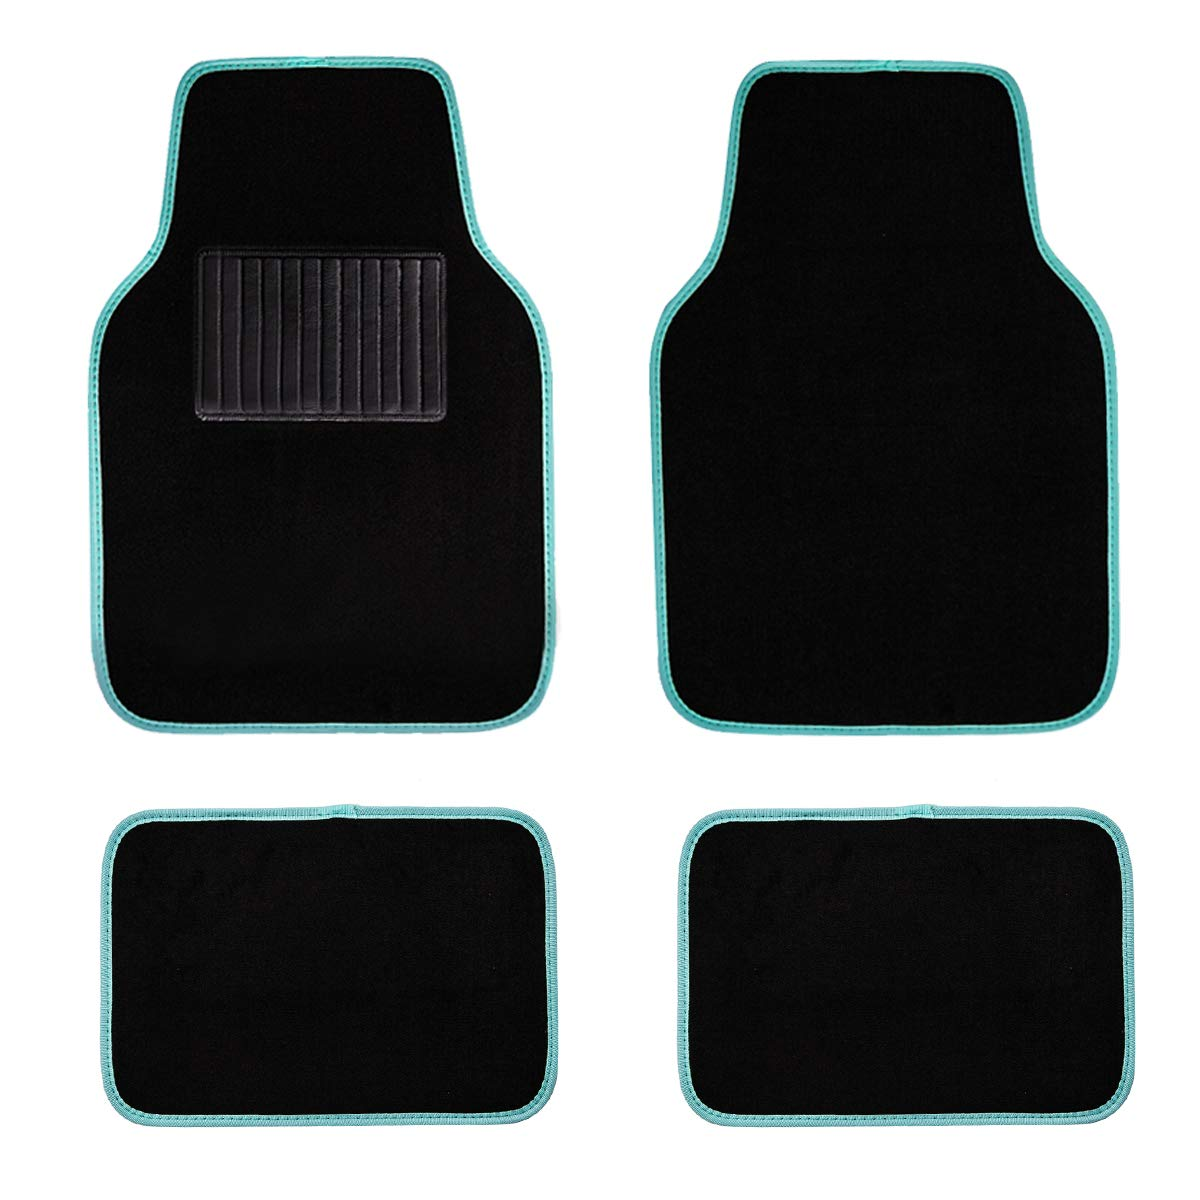 Black and Red CAR PASS Universal Waterproof Car Floor Mats with Heel Pad,Universal fit for Suvs,Trucks,sedans,Set of 4